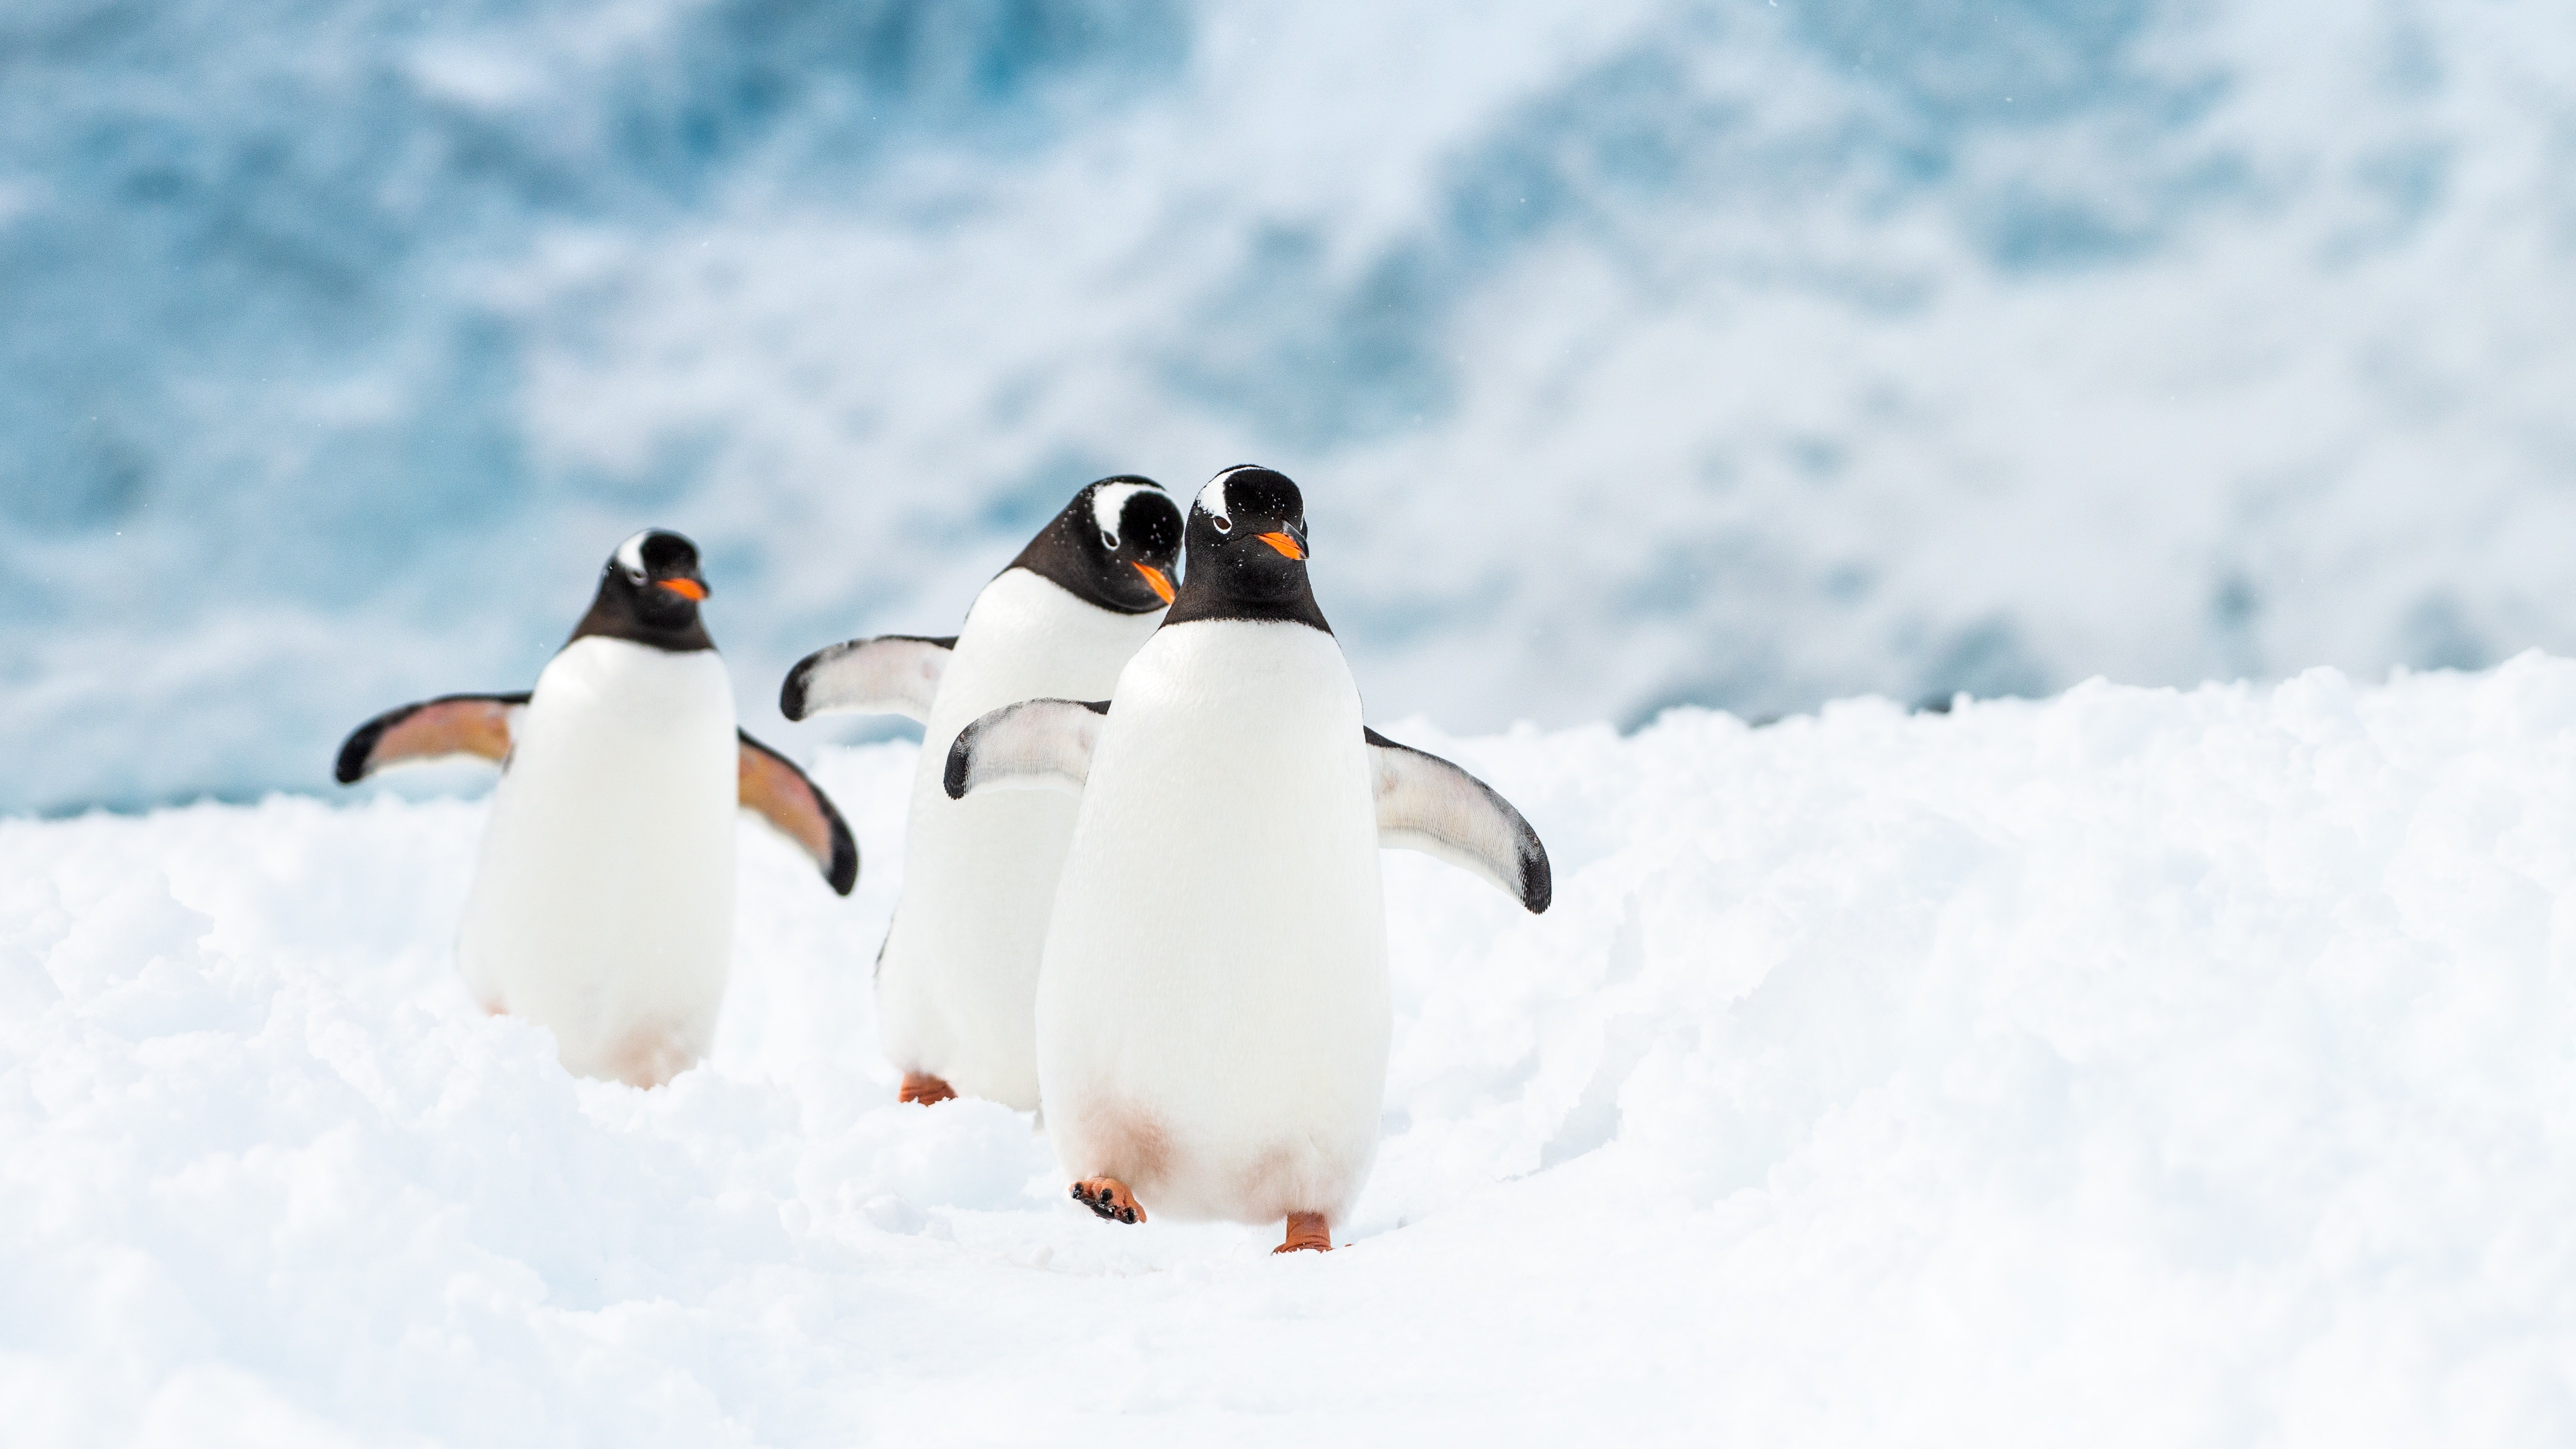 12 Things No One Tells You About Traveling To Antarctica